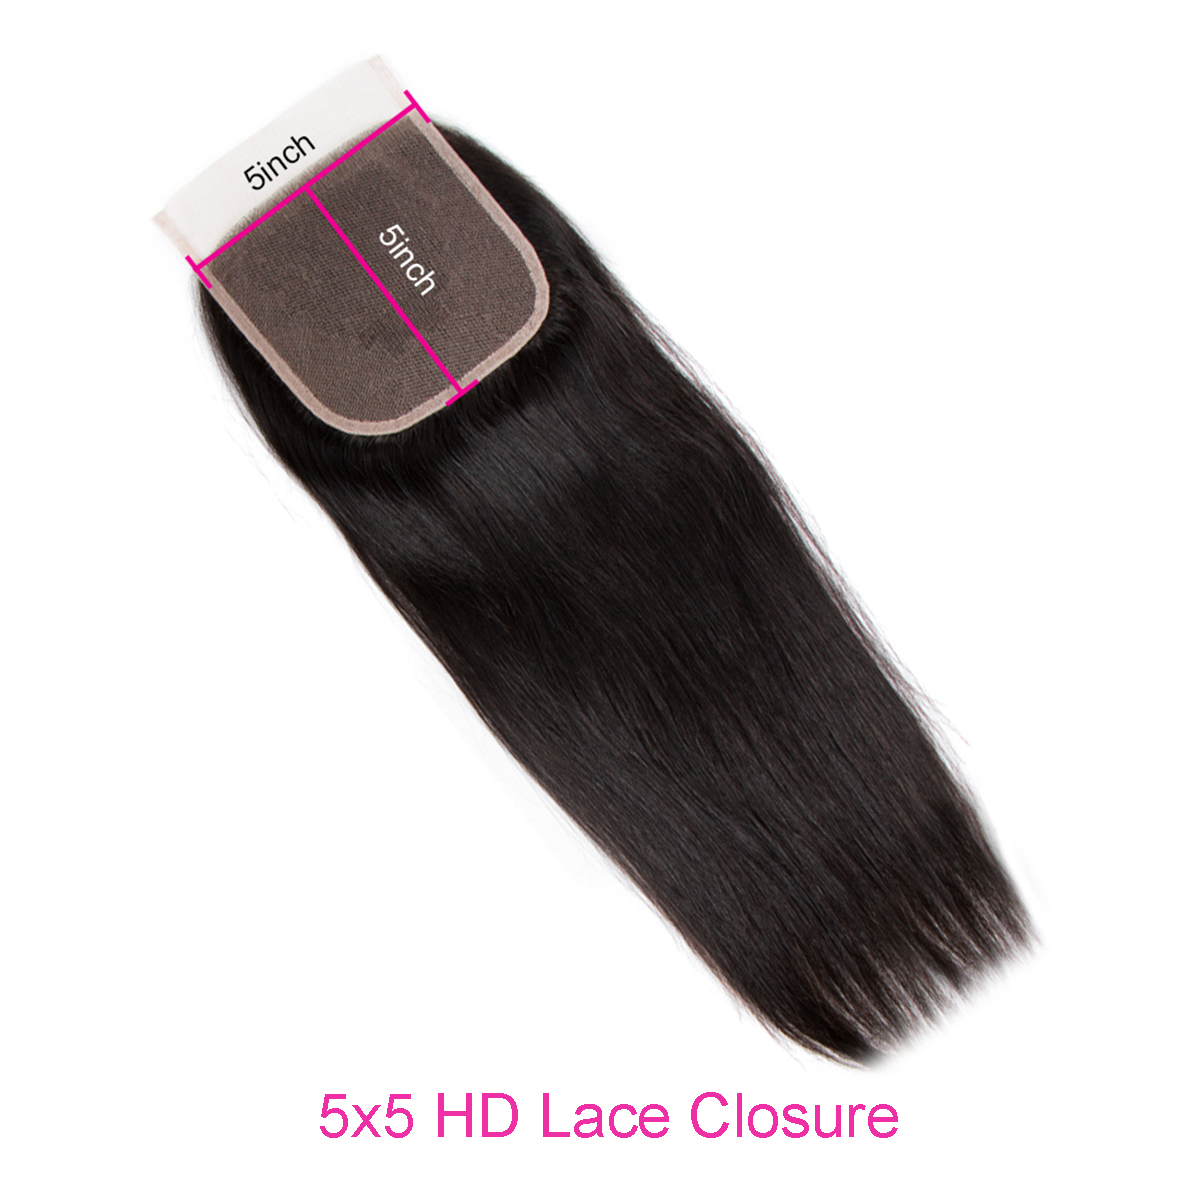 Straight 5x5 HD lace closure